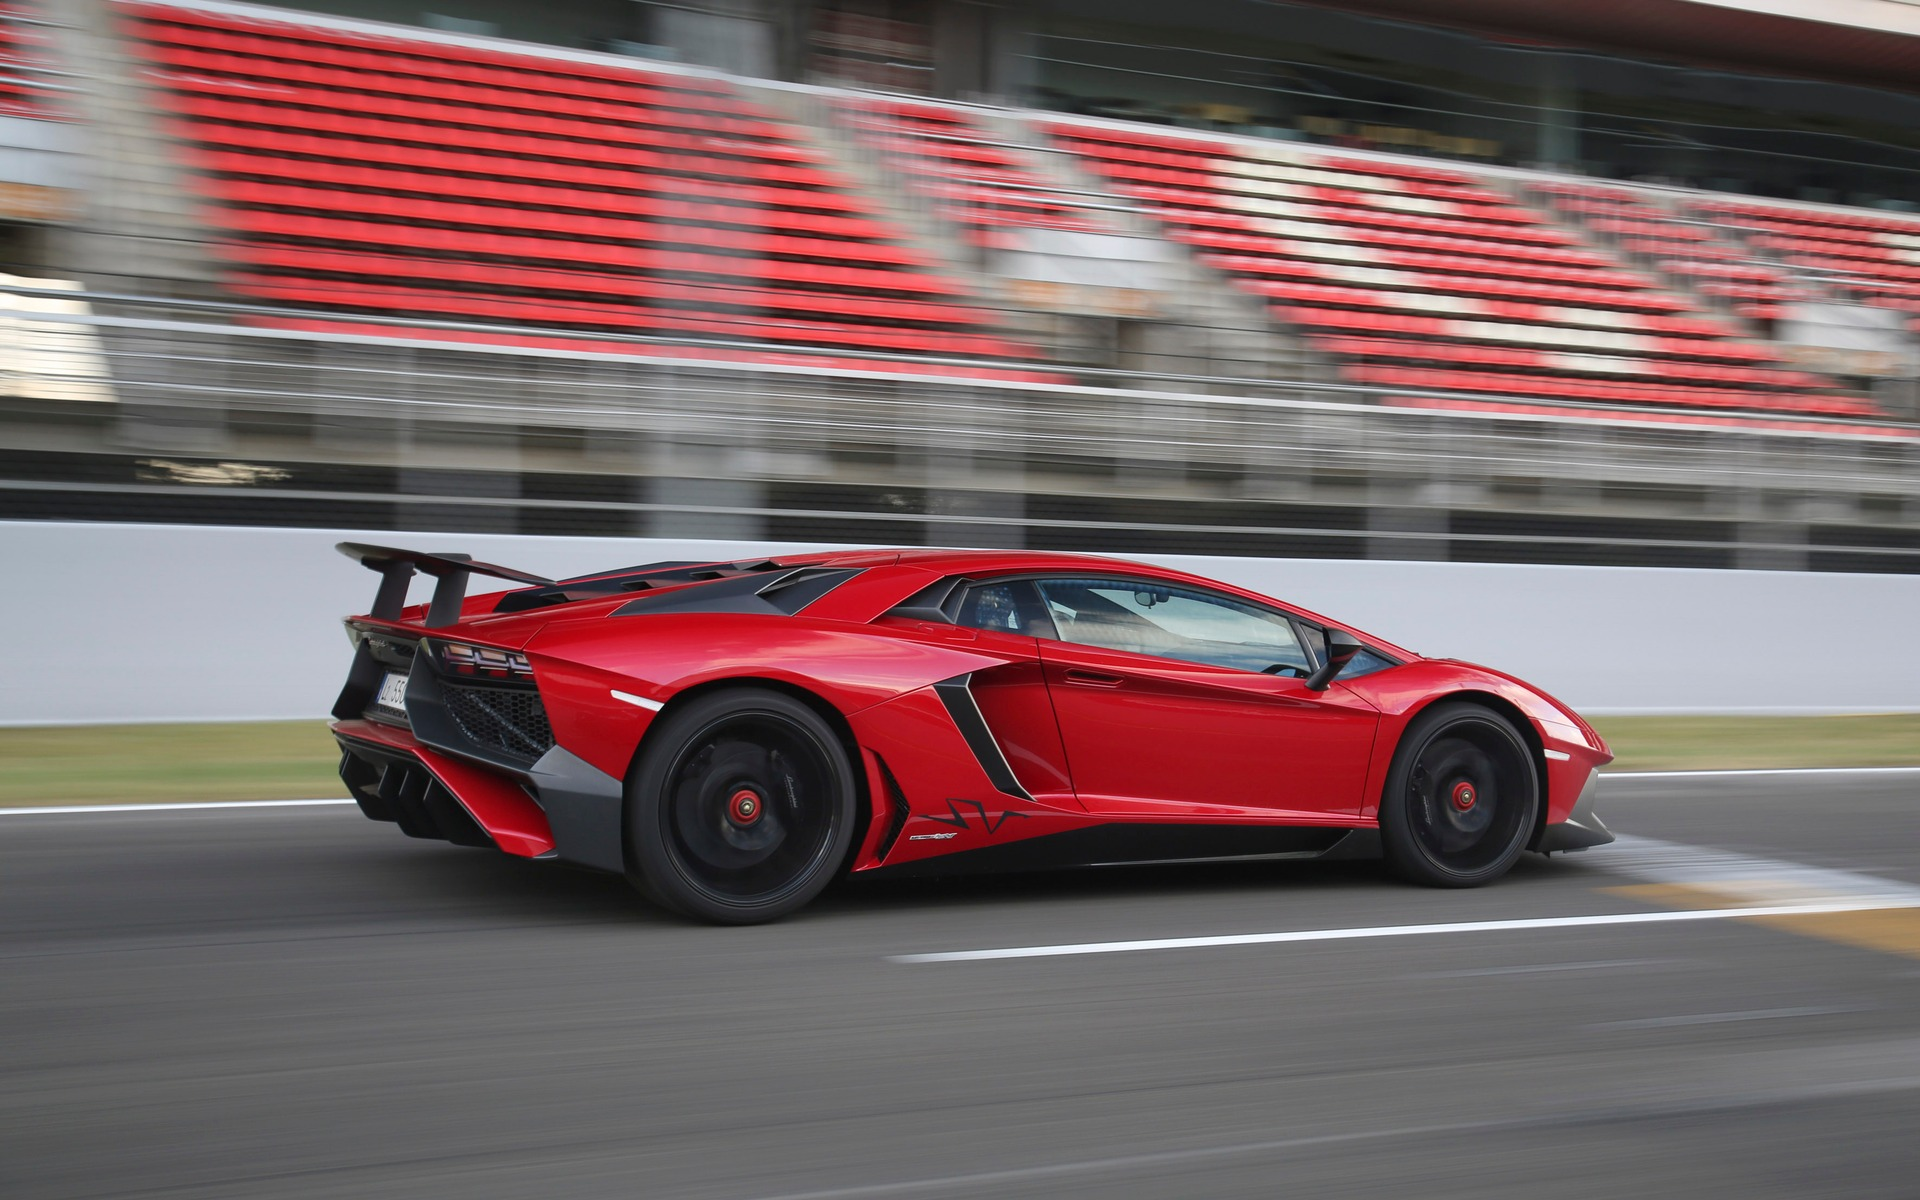 2017 Lamborghini Aventador - News, reviews, picture galleries and ...